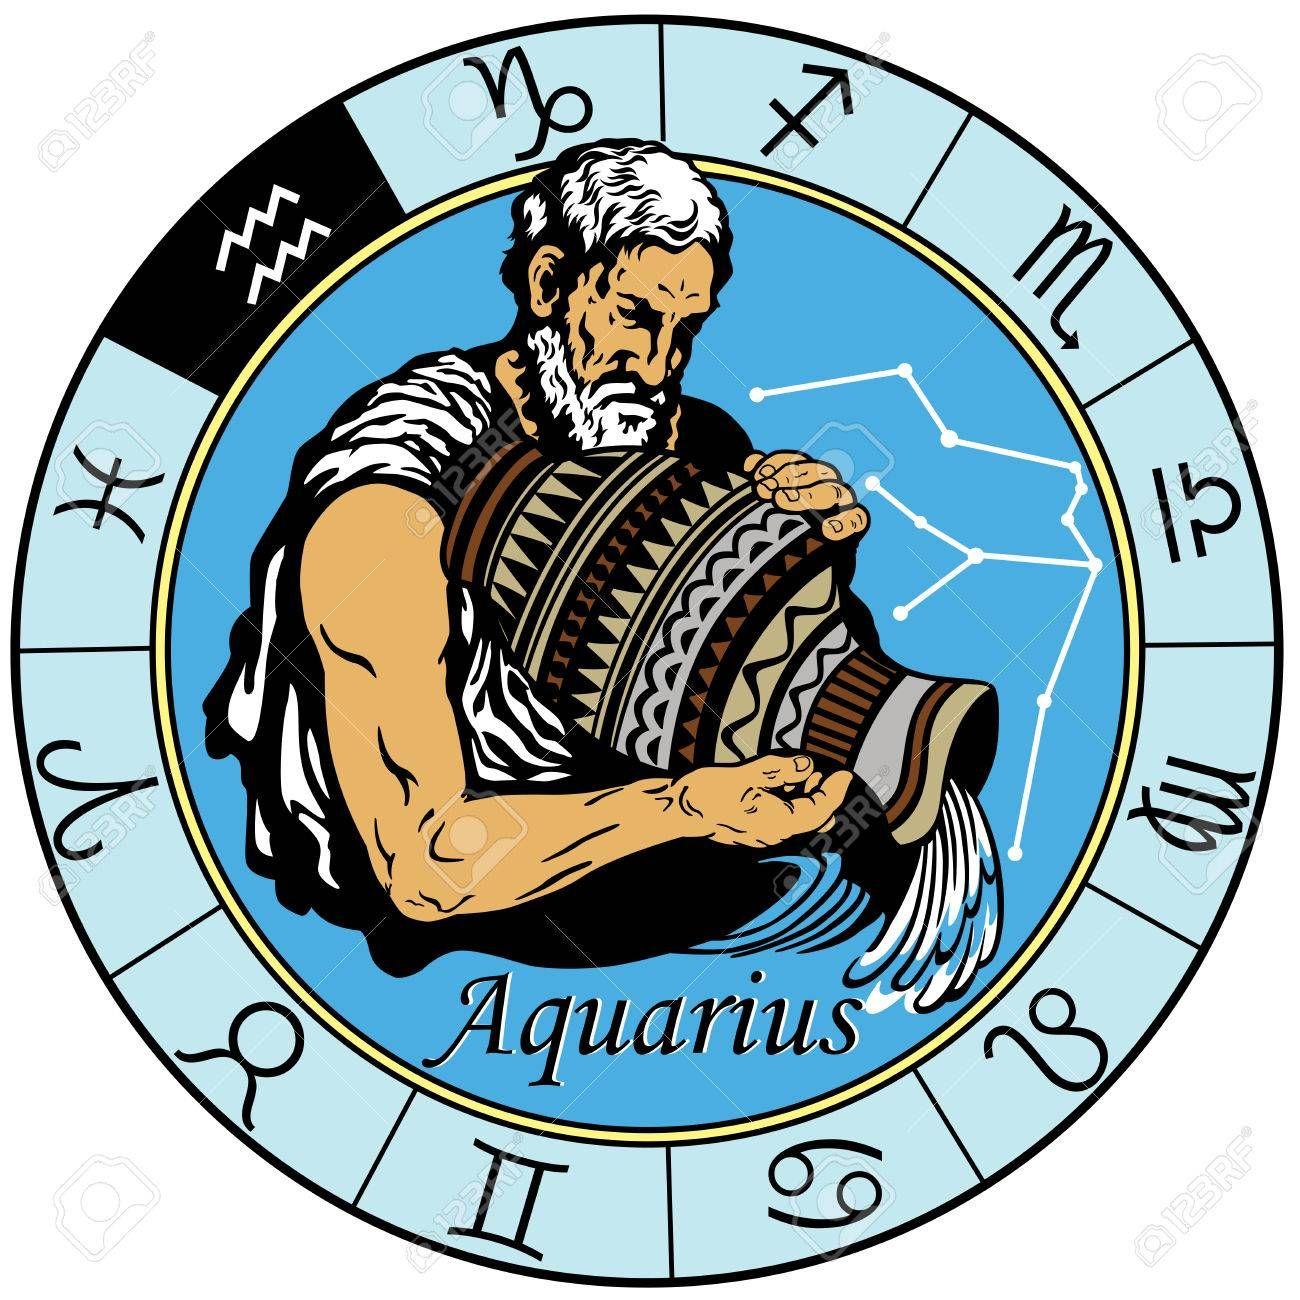 1300x1300 Aquarius Astrological Horoscope Sign In The Zodiac Wheel Signs